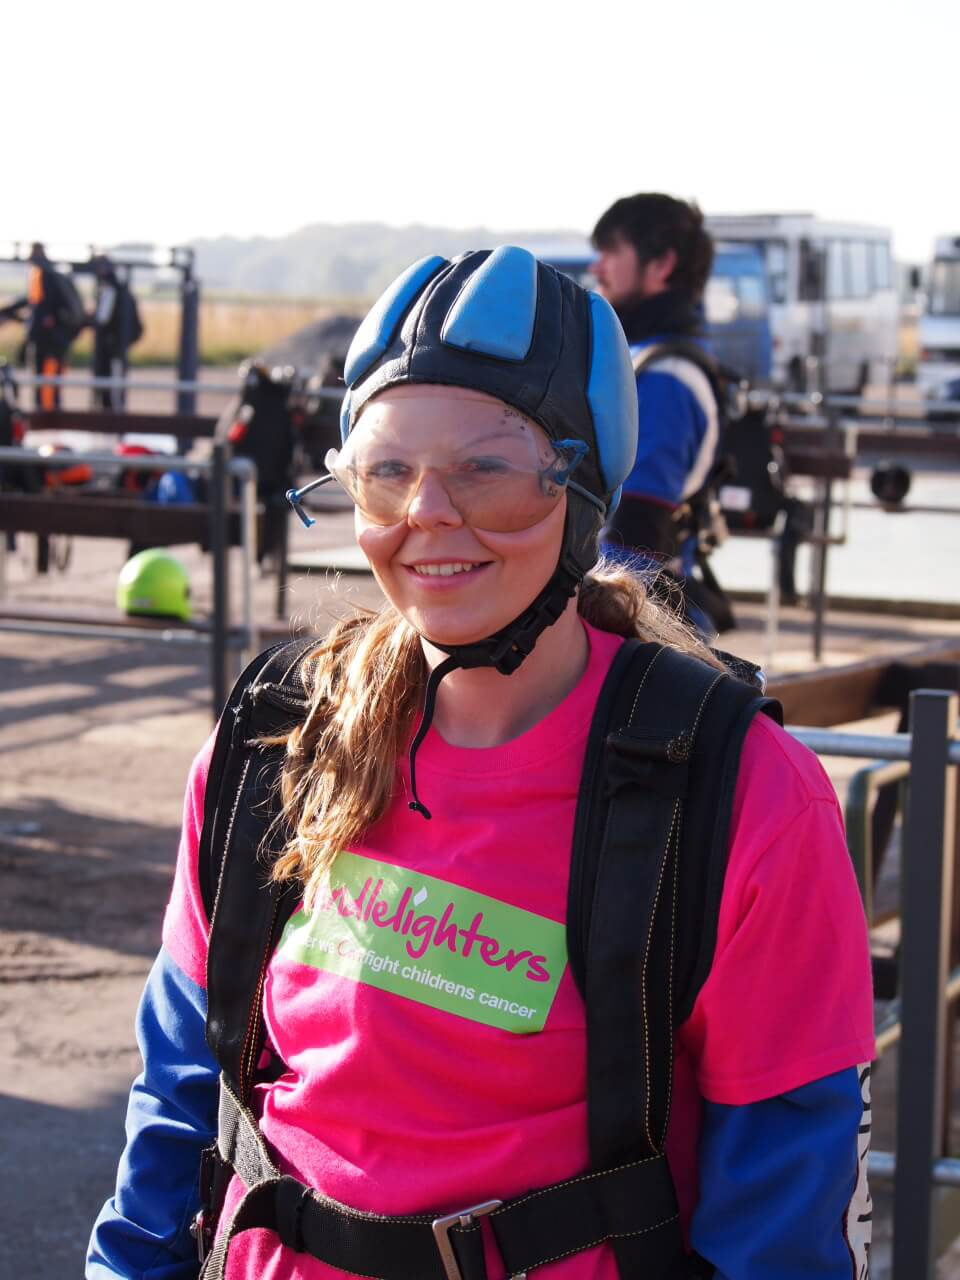 Candlelighters CCAM Skydive (Childhood Cancer Awareness Month)